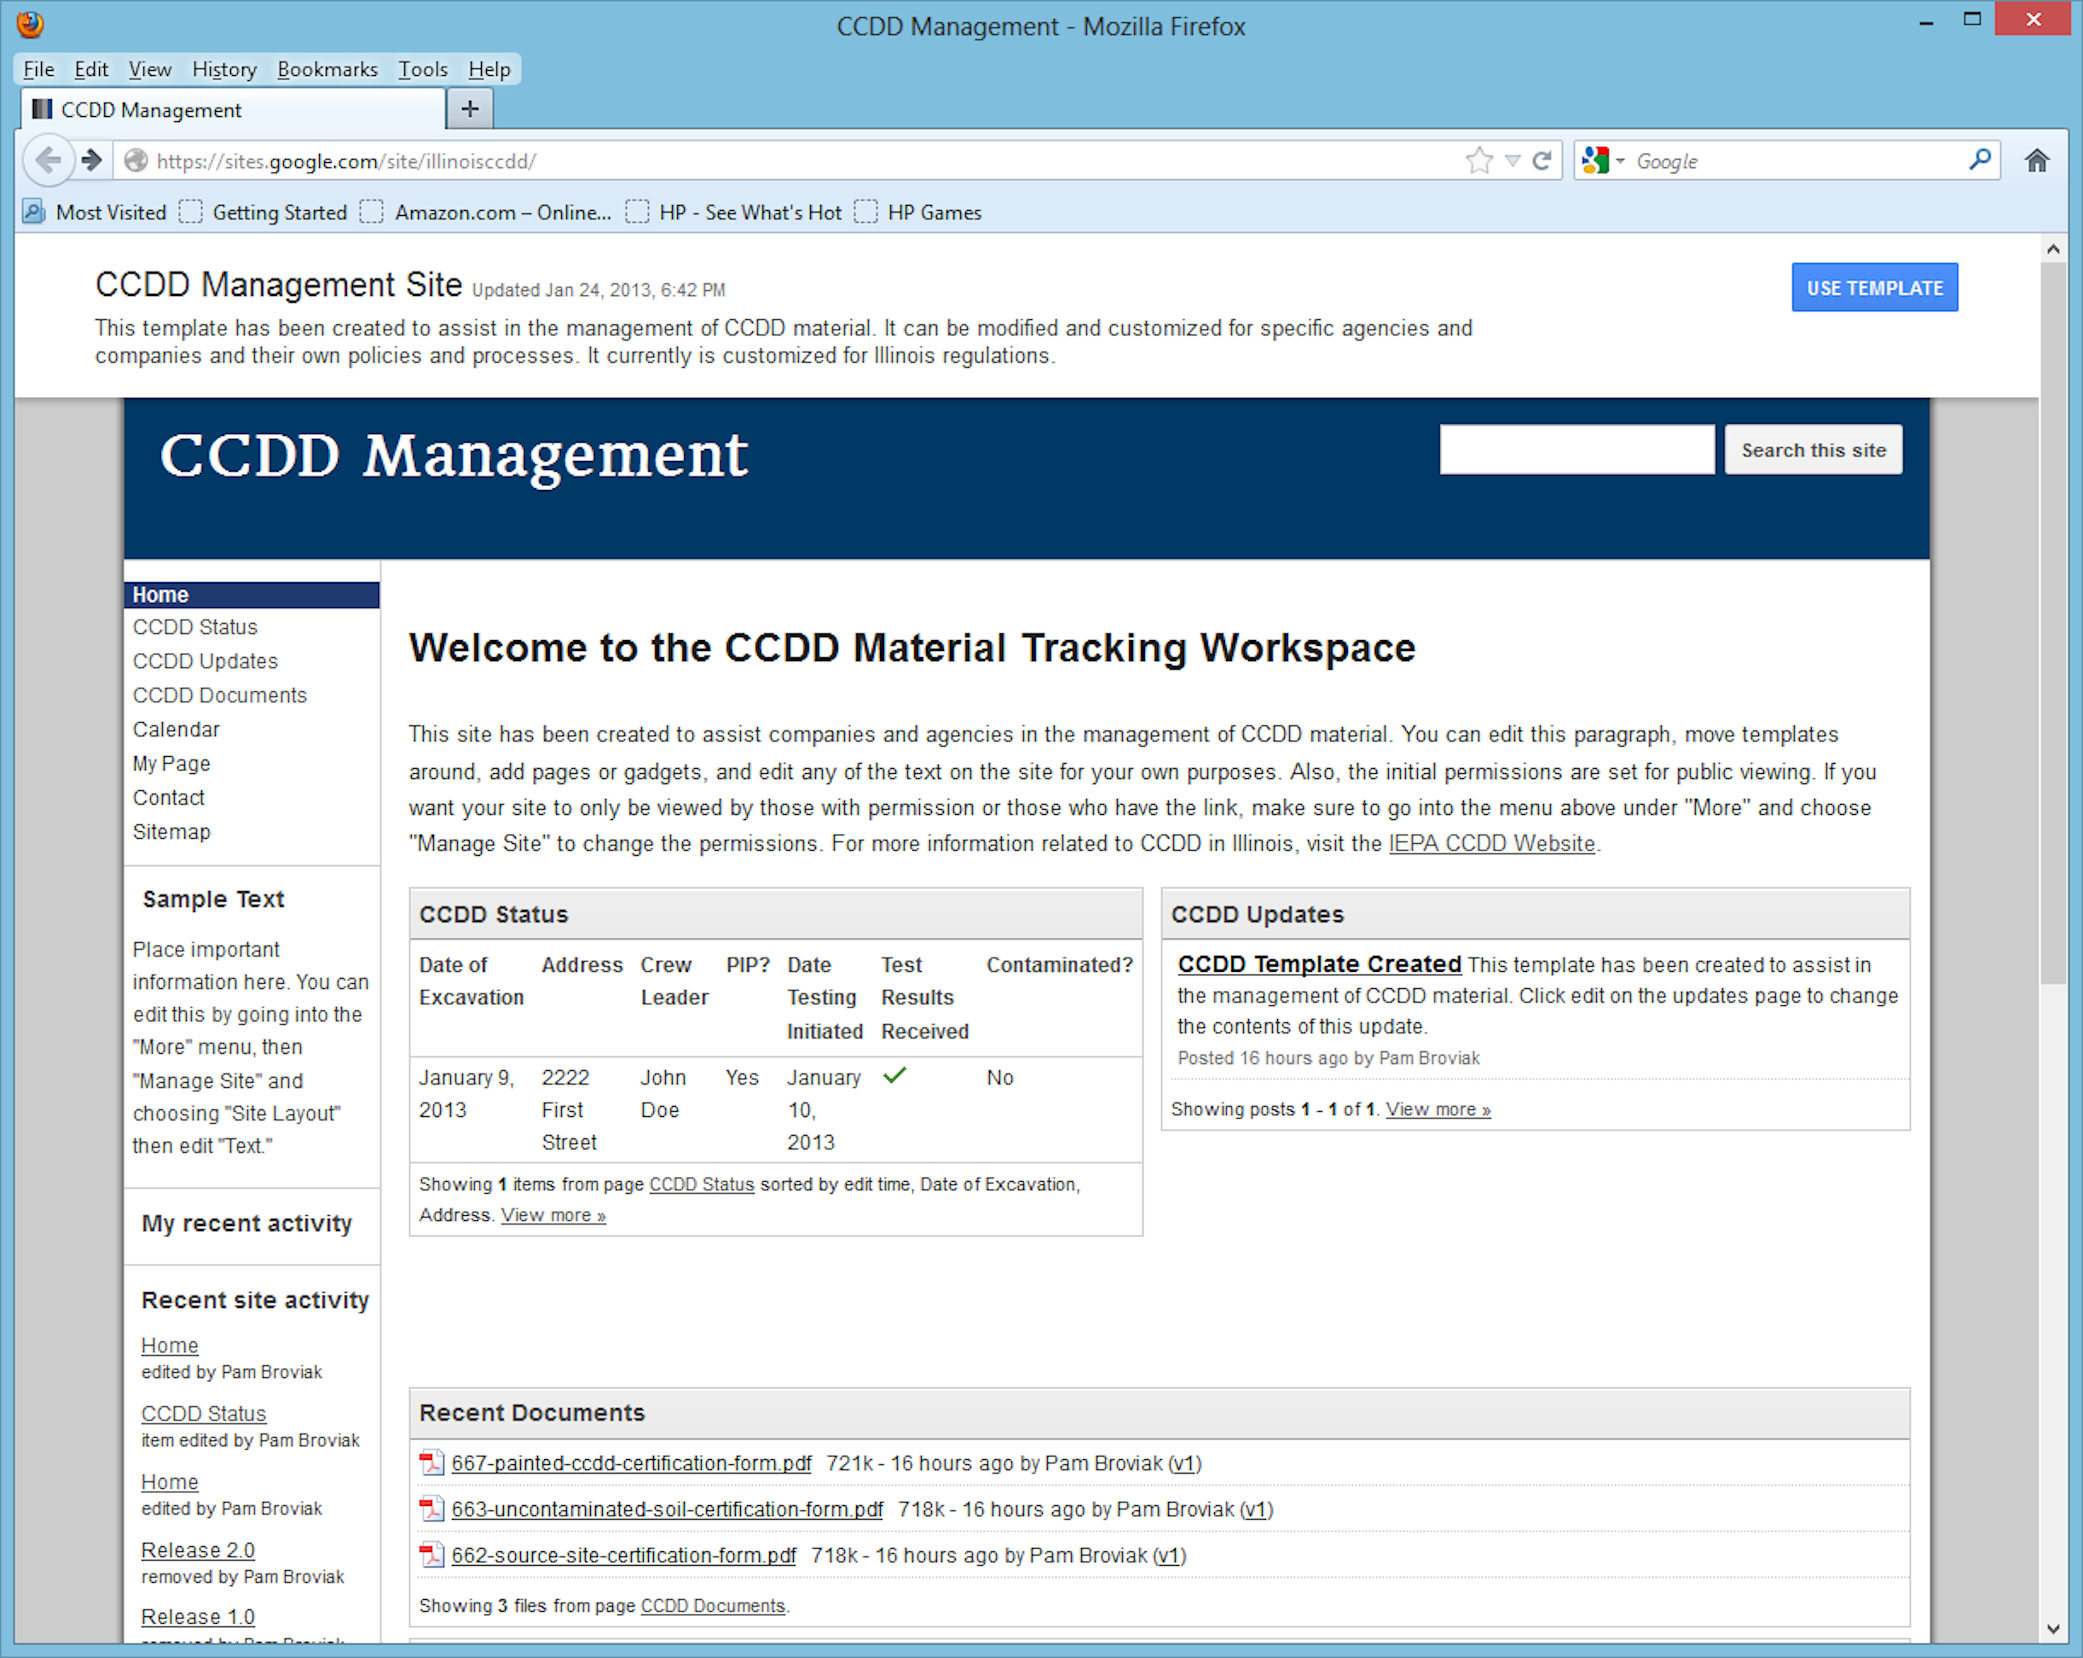 CCDD Management Site